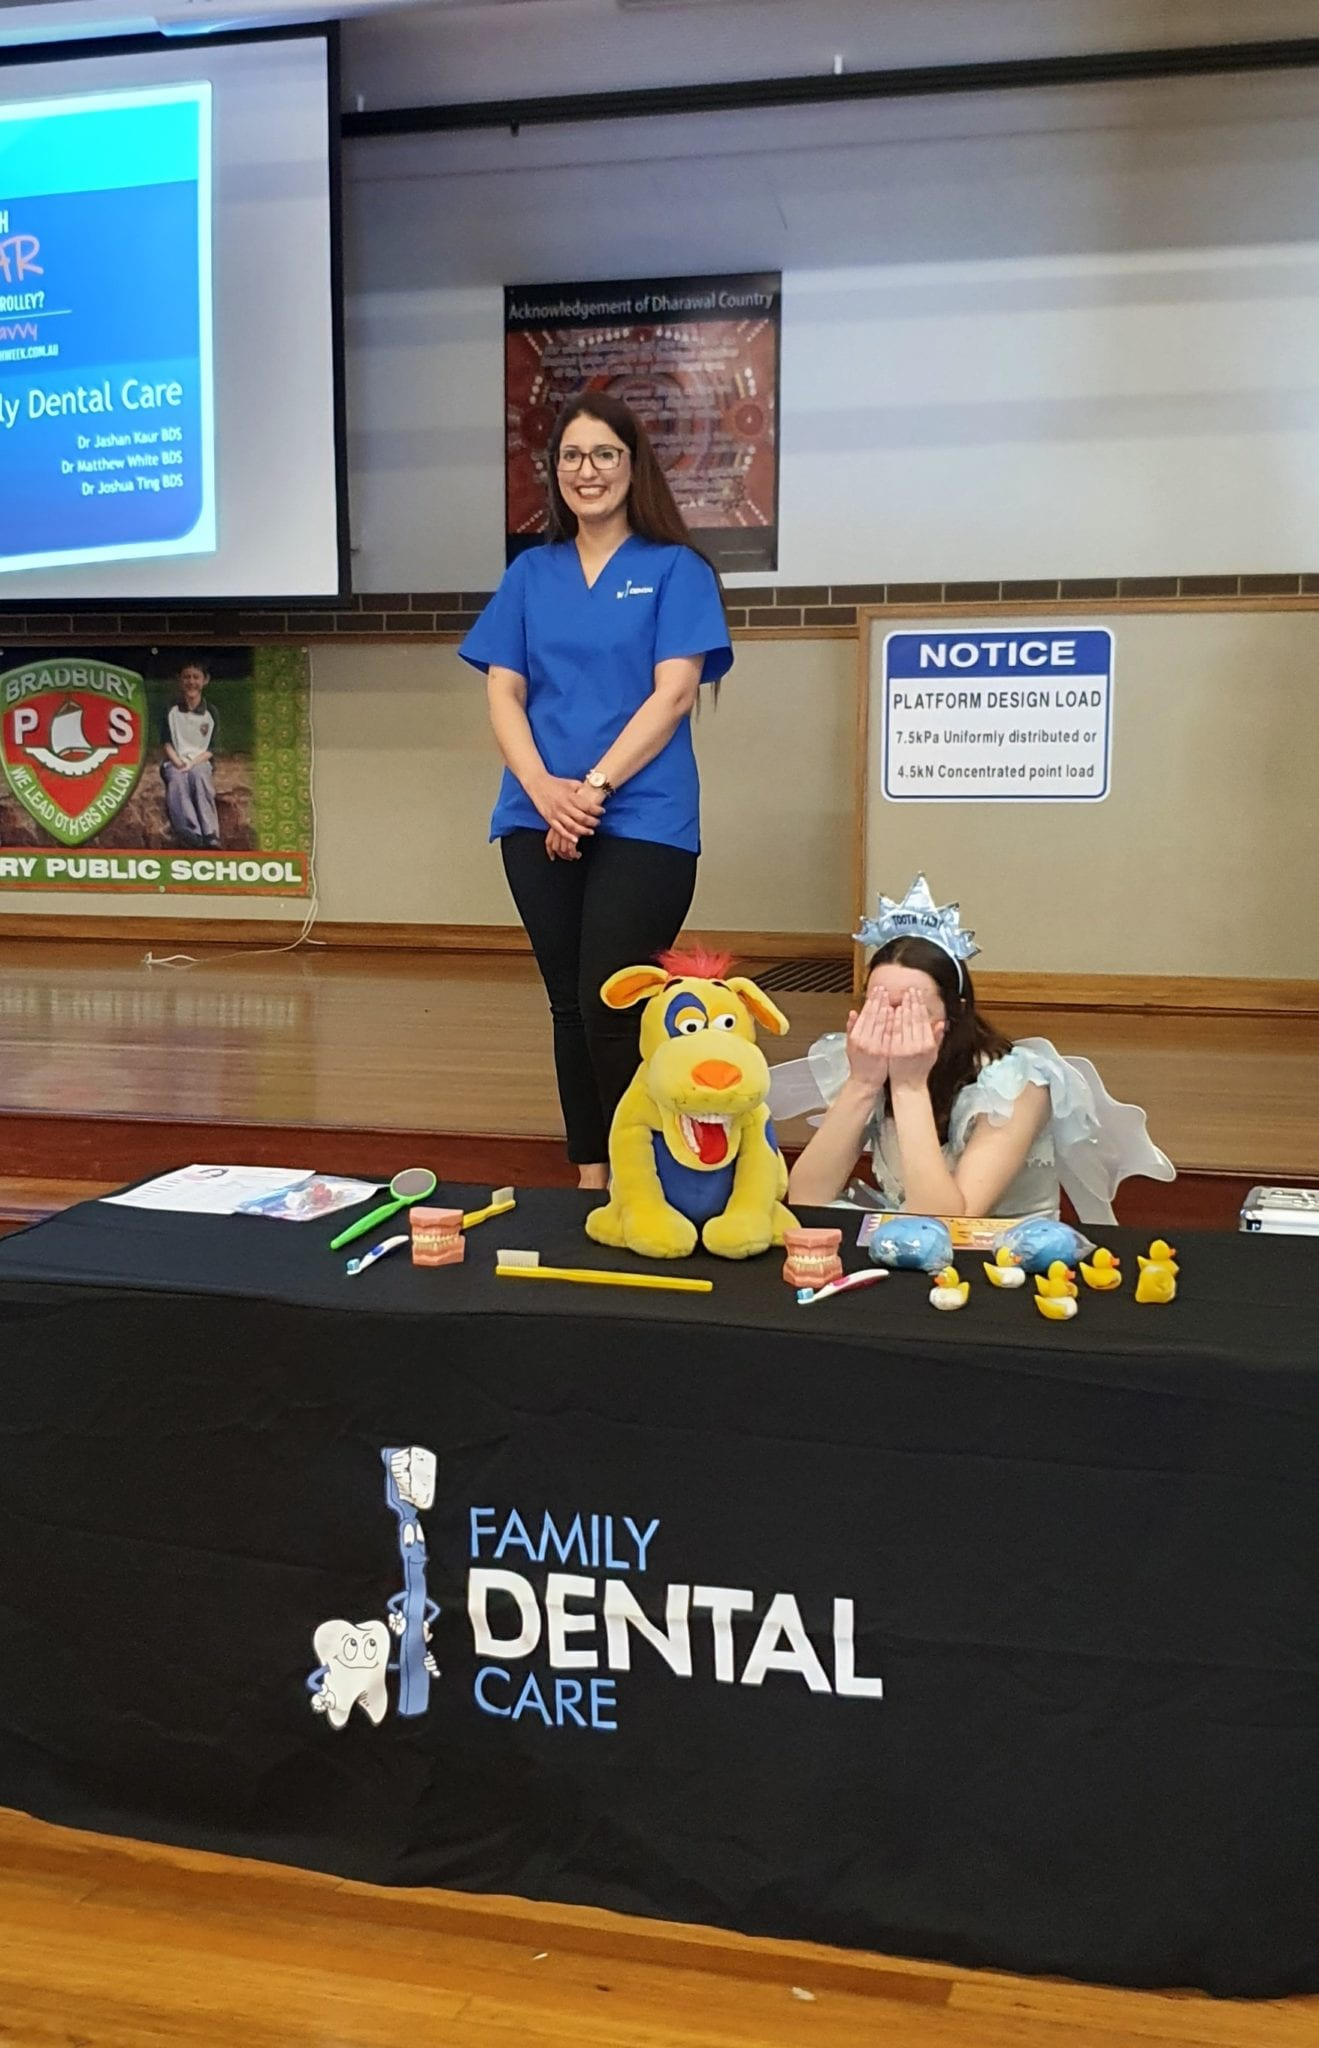 Campbelltown Family Dental Care Bradbury PS 2020